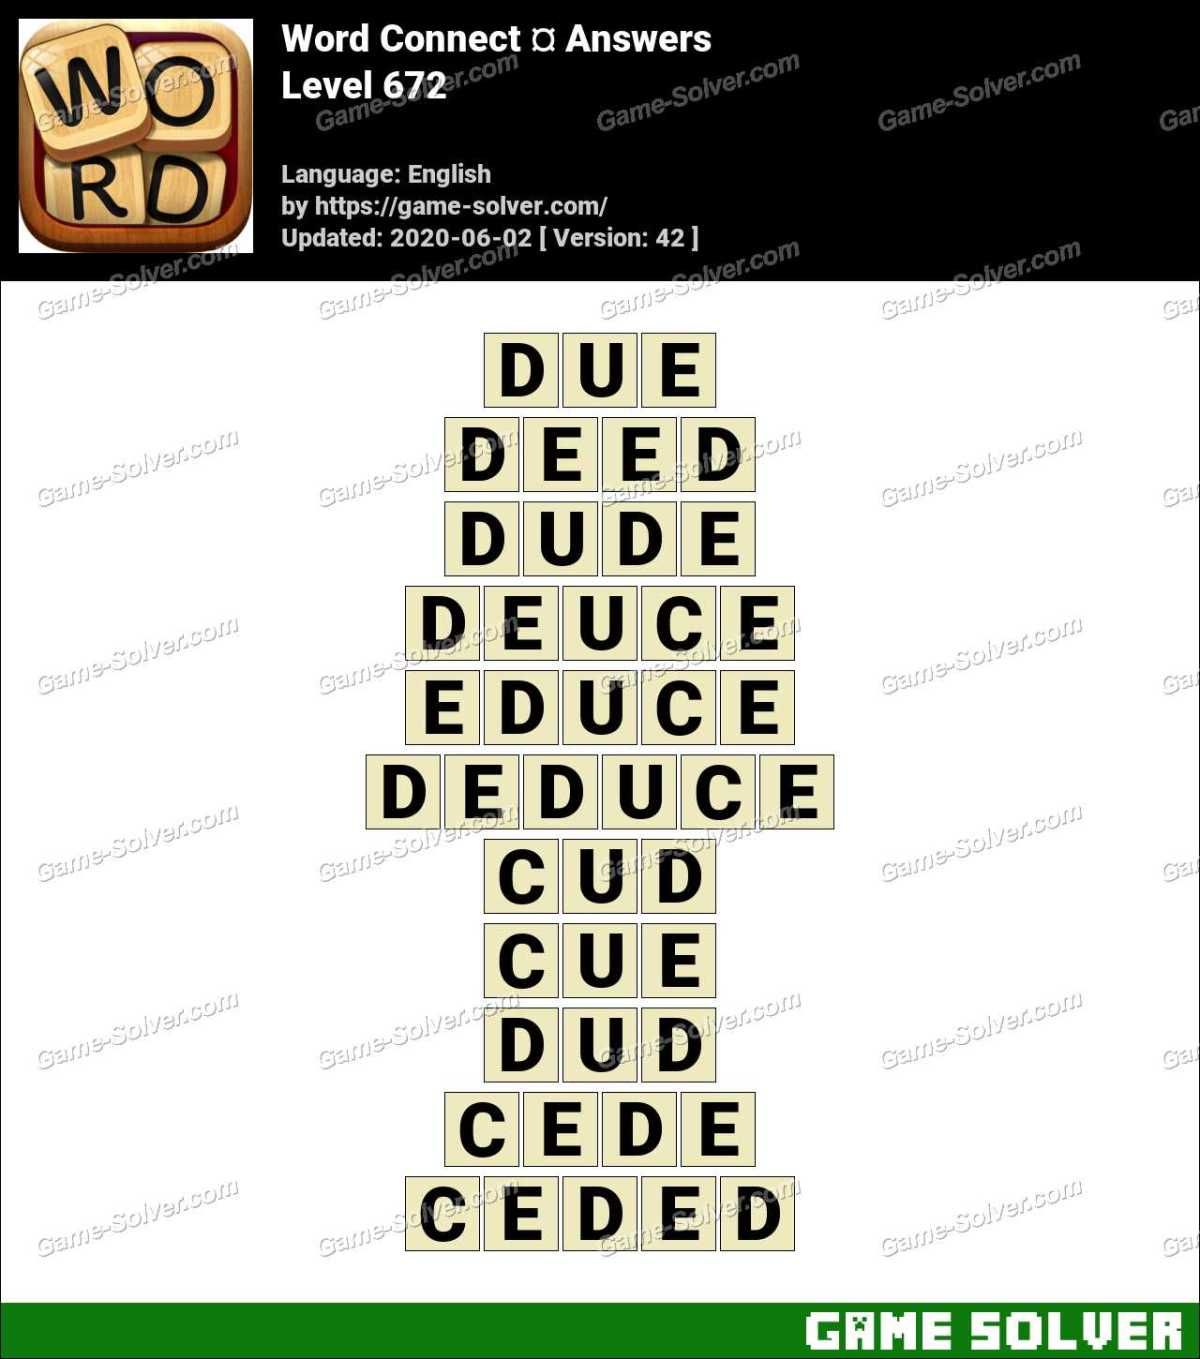 Word Connect Level 672 Answers